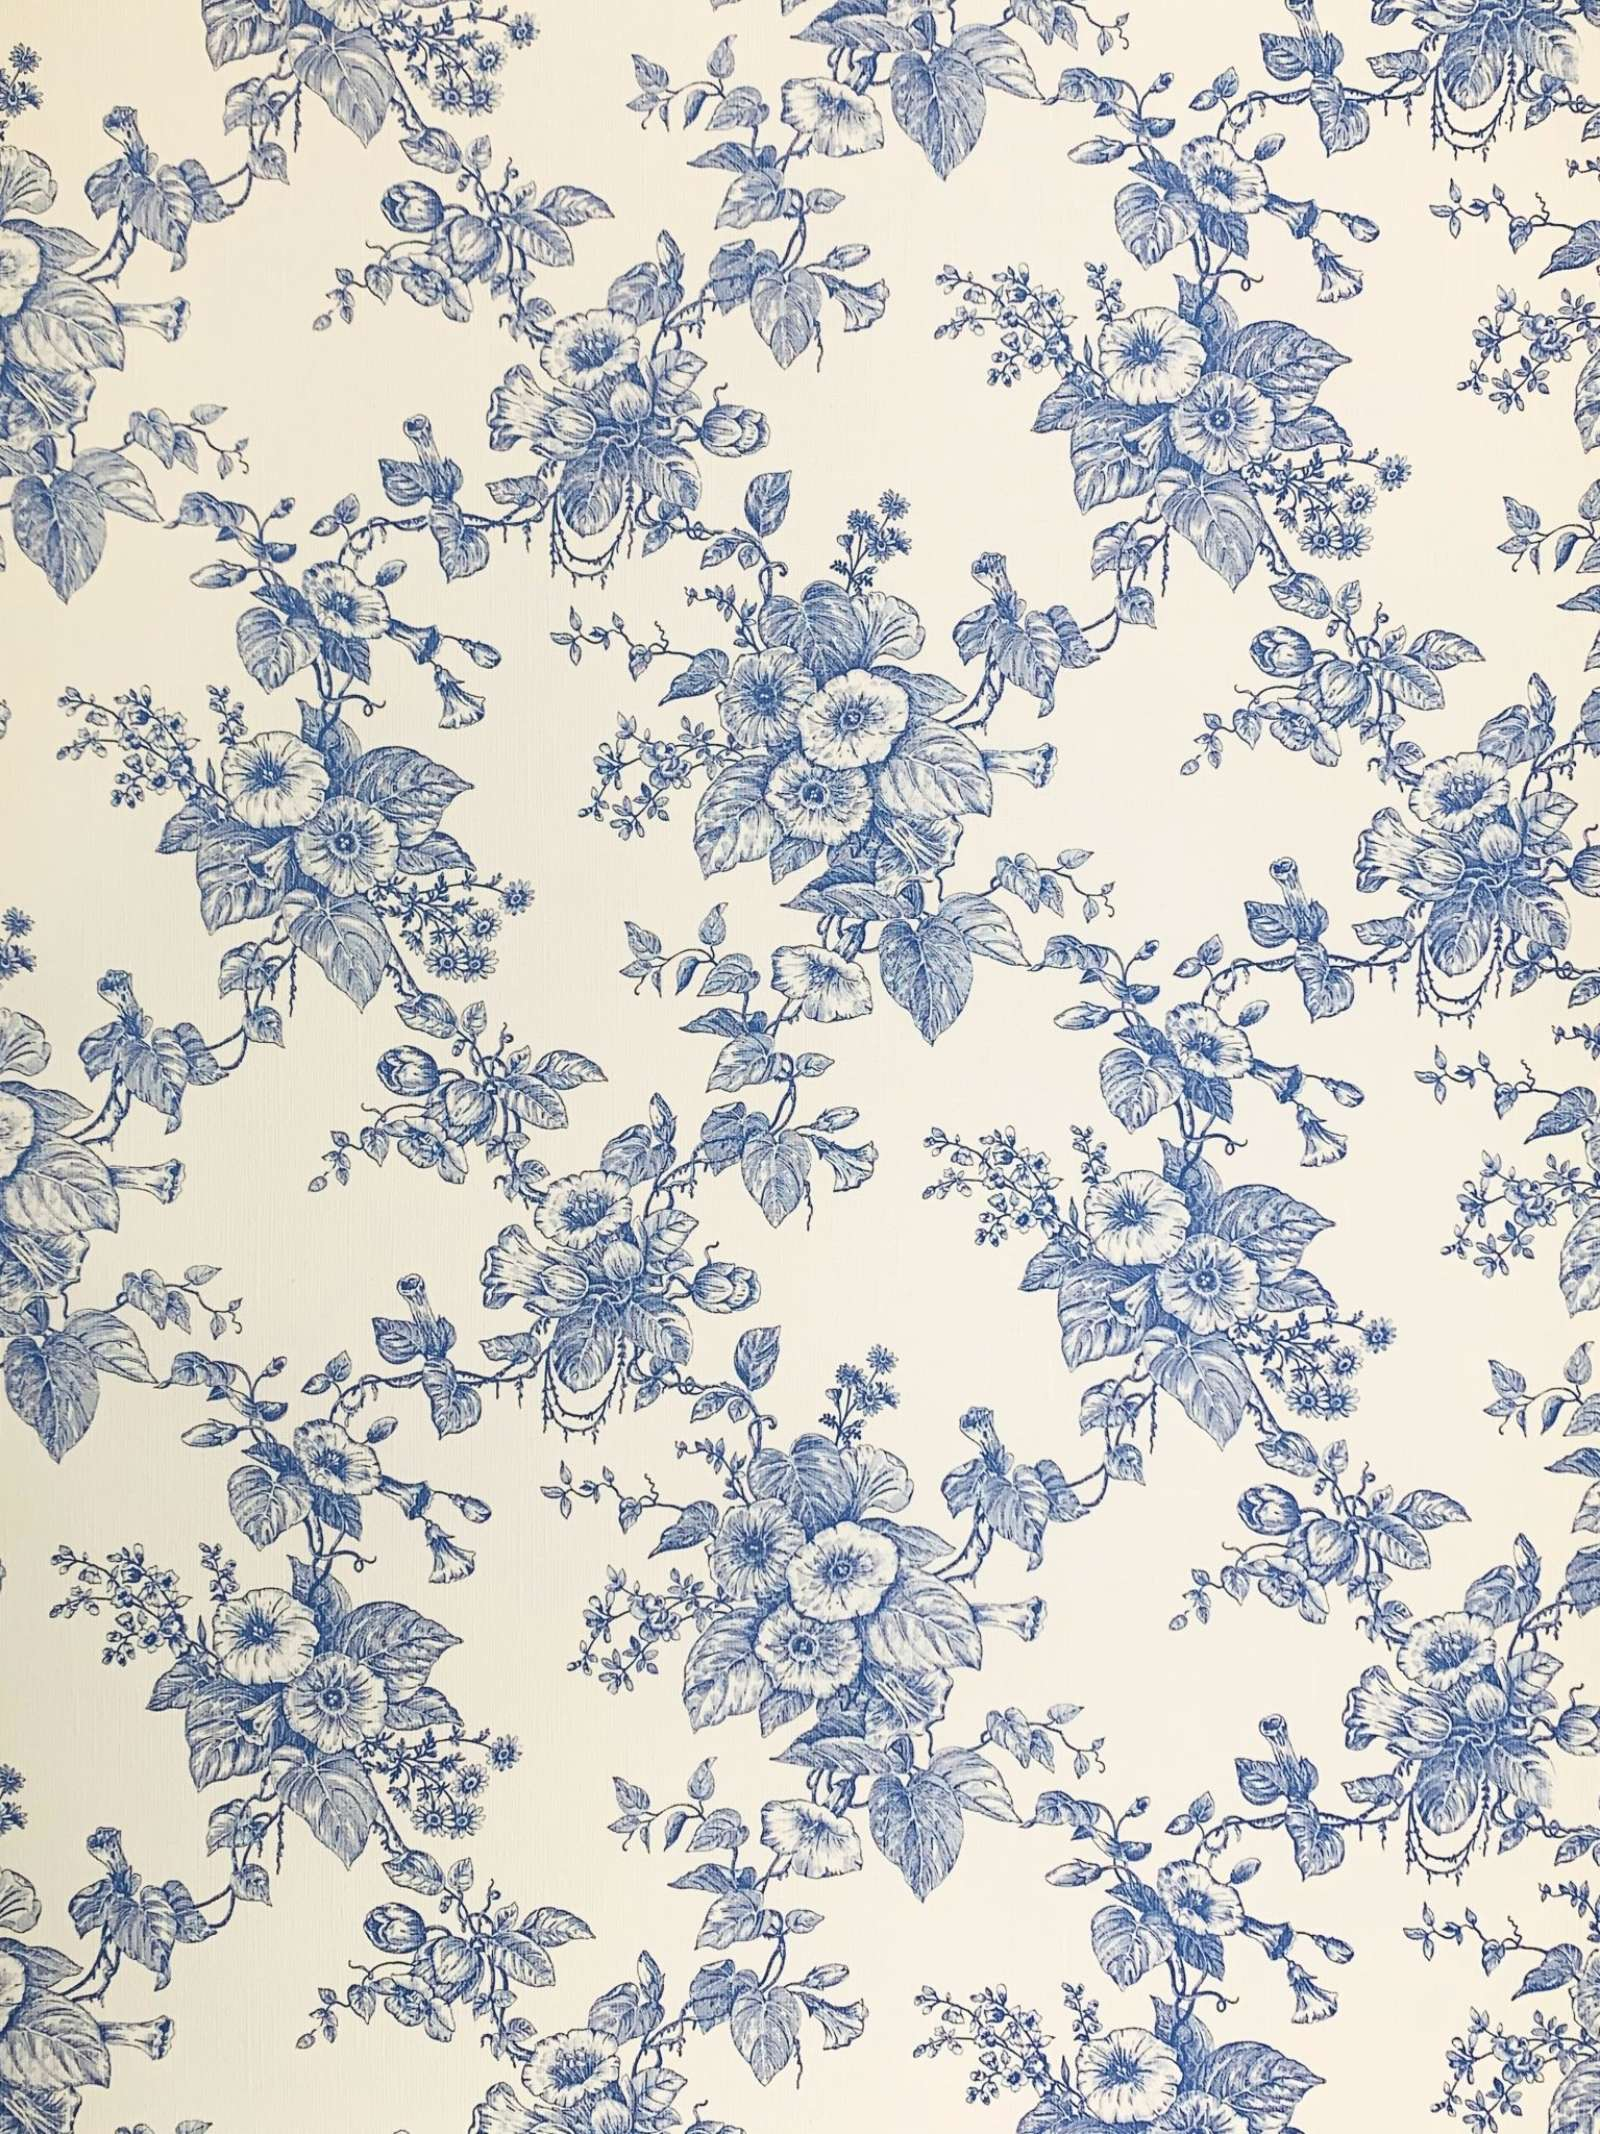 Vintage Wallpapers Online Shop 1950s Botanical Vintage Wallpaper